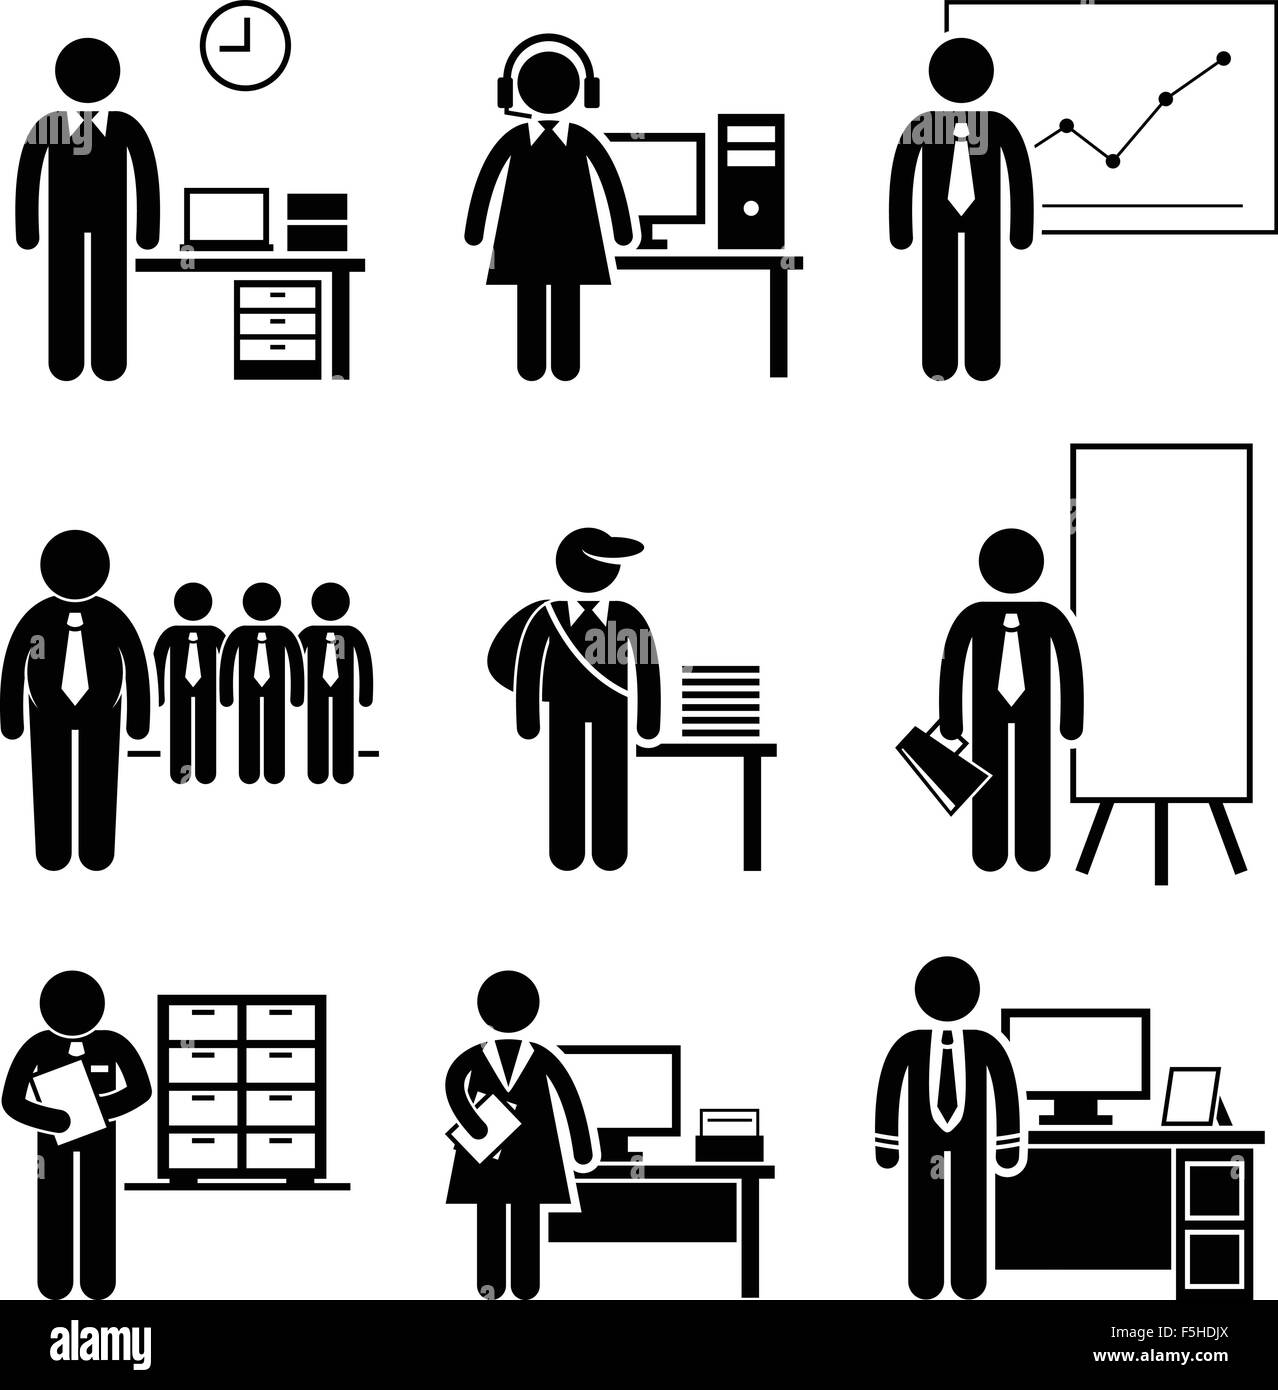 Office Jobs Occupations Careers - Staff Employee, Help Desk Support, Analyst, Runner, Manager, Marketing, Auditor, - Stock Image